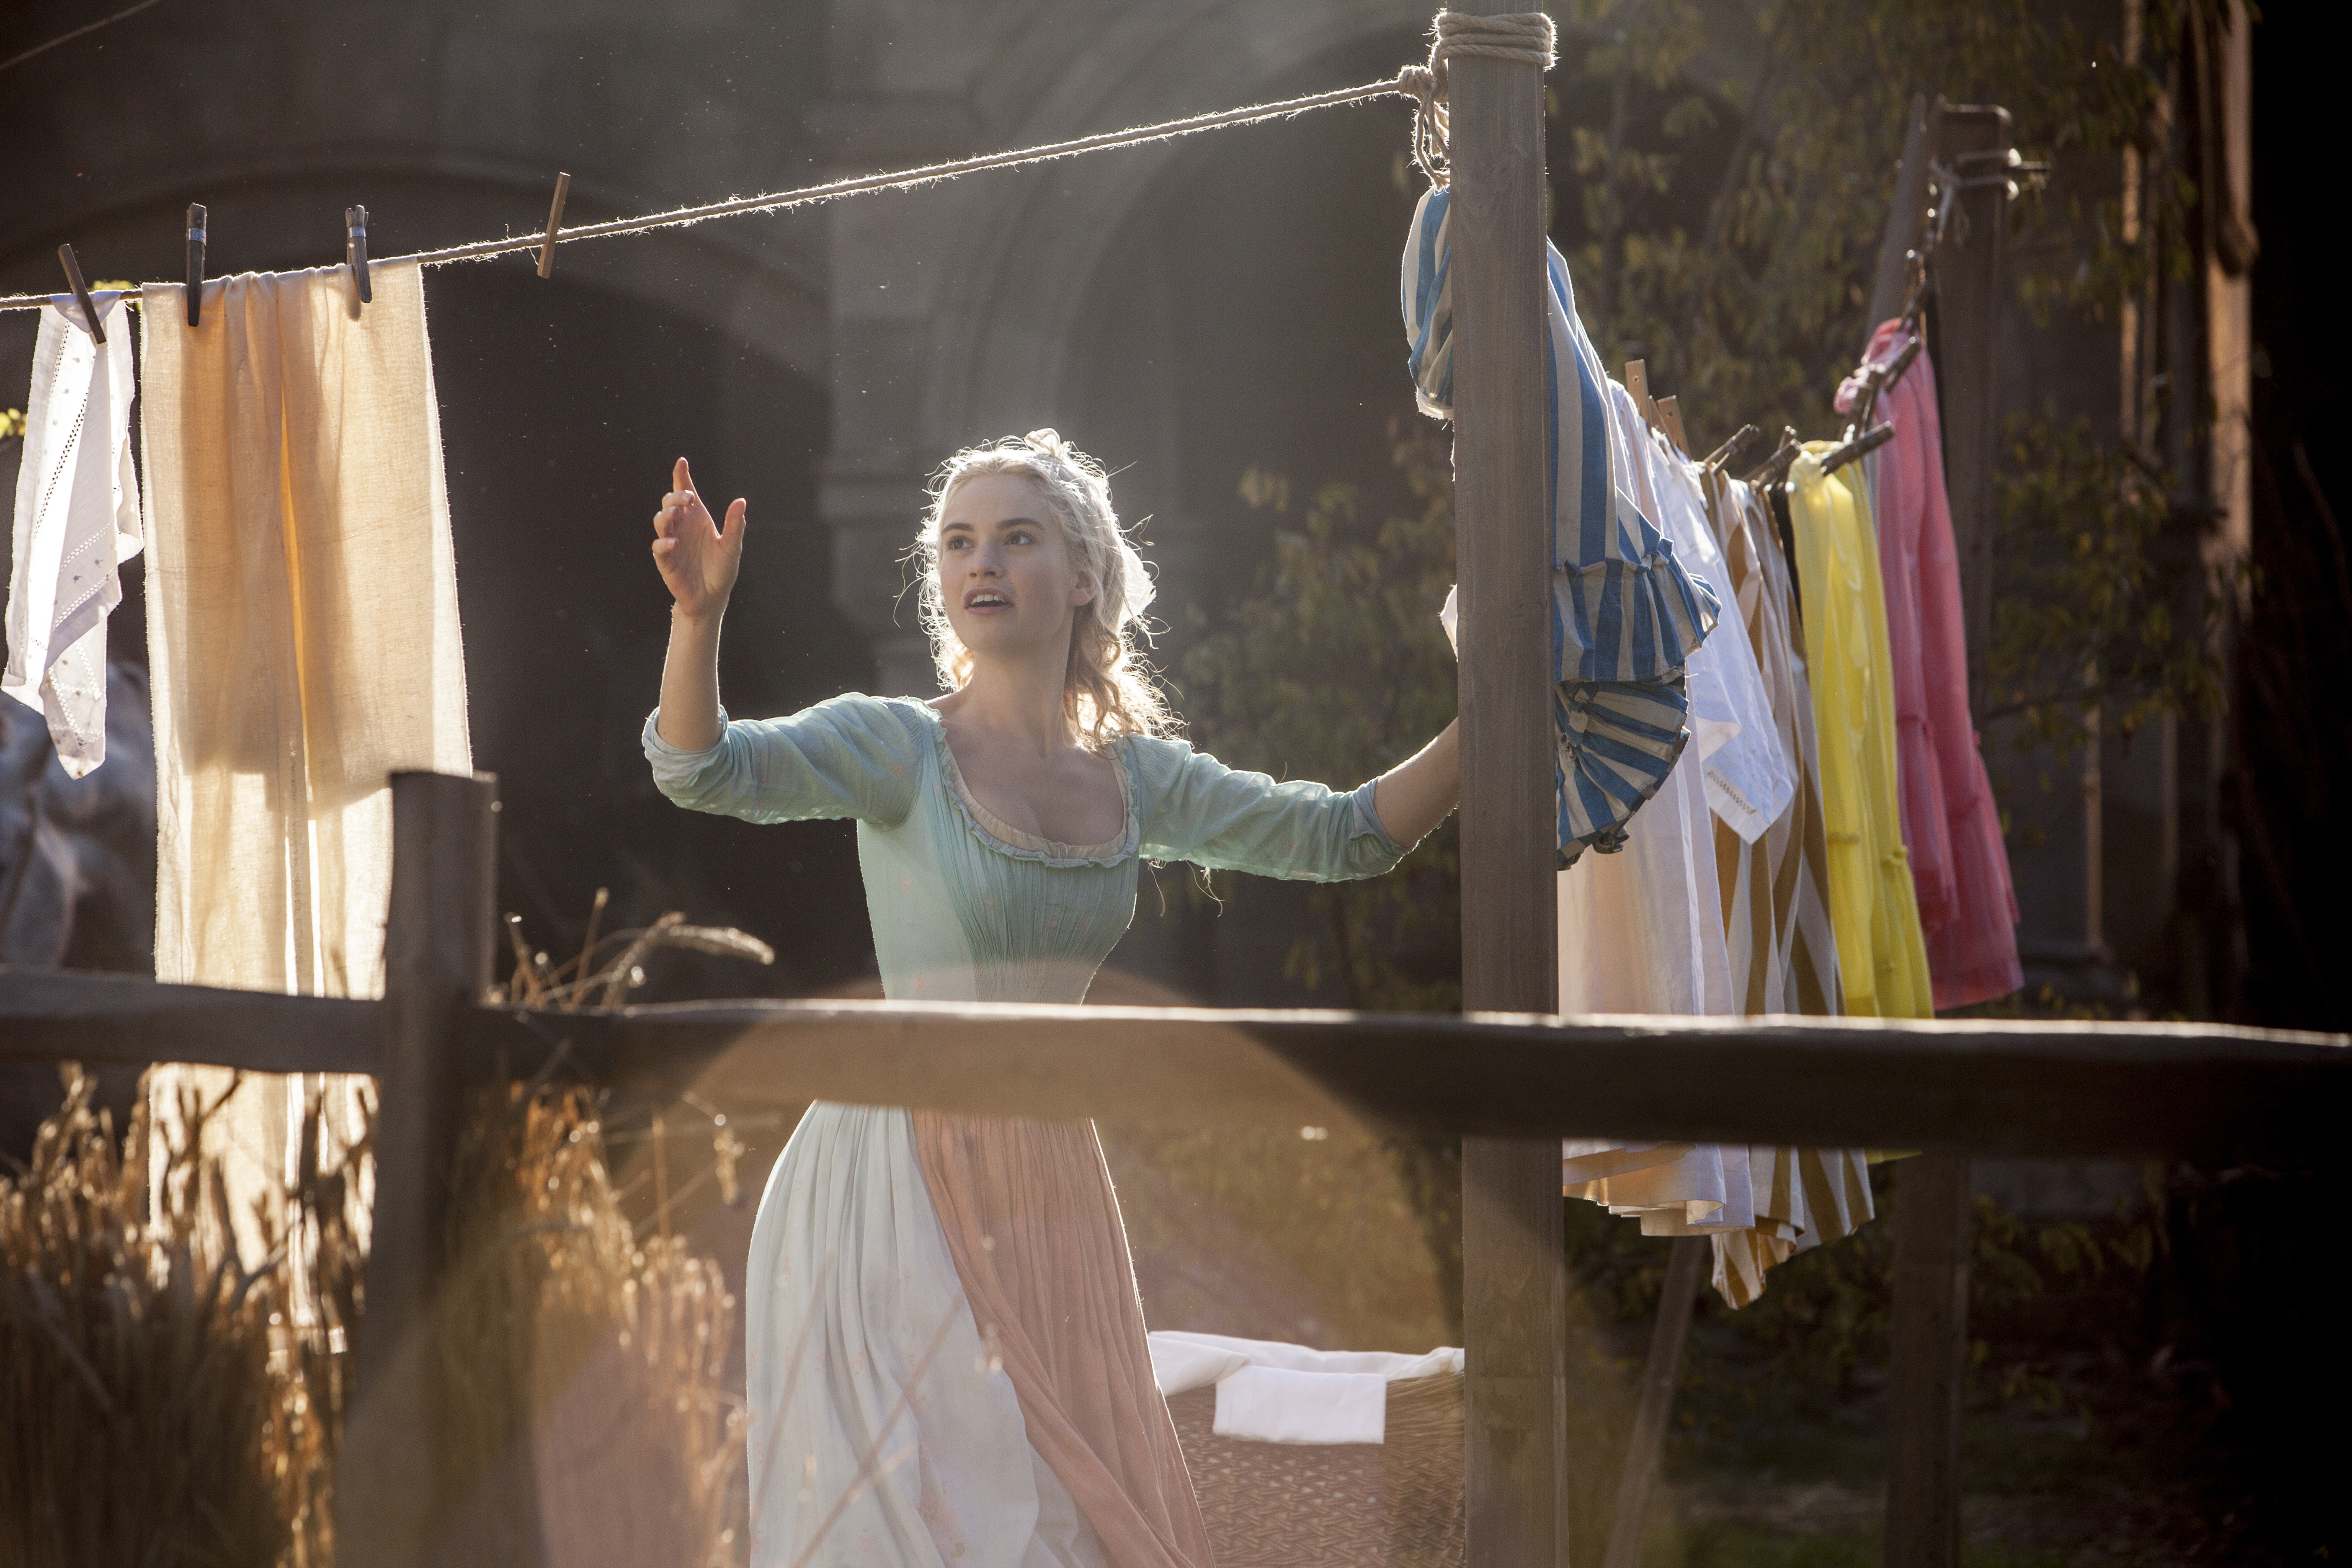 Lily James as Cinderella in Disney's 2015 live-action feature inspired by the classic fairy tale, Cinderella